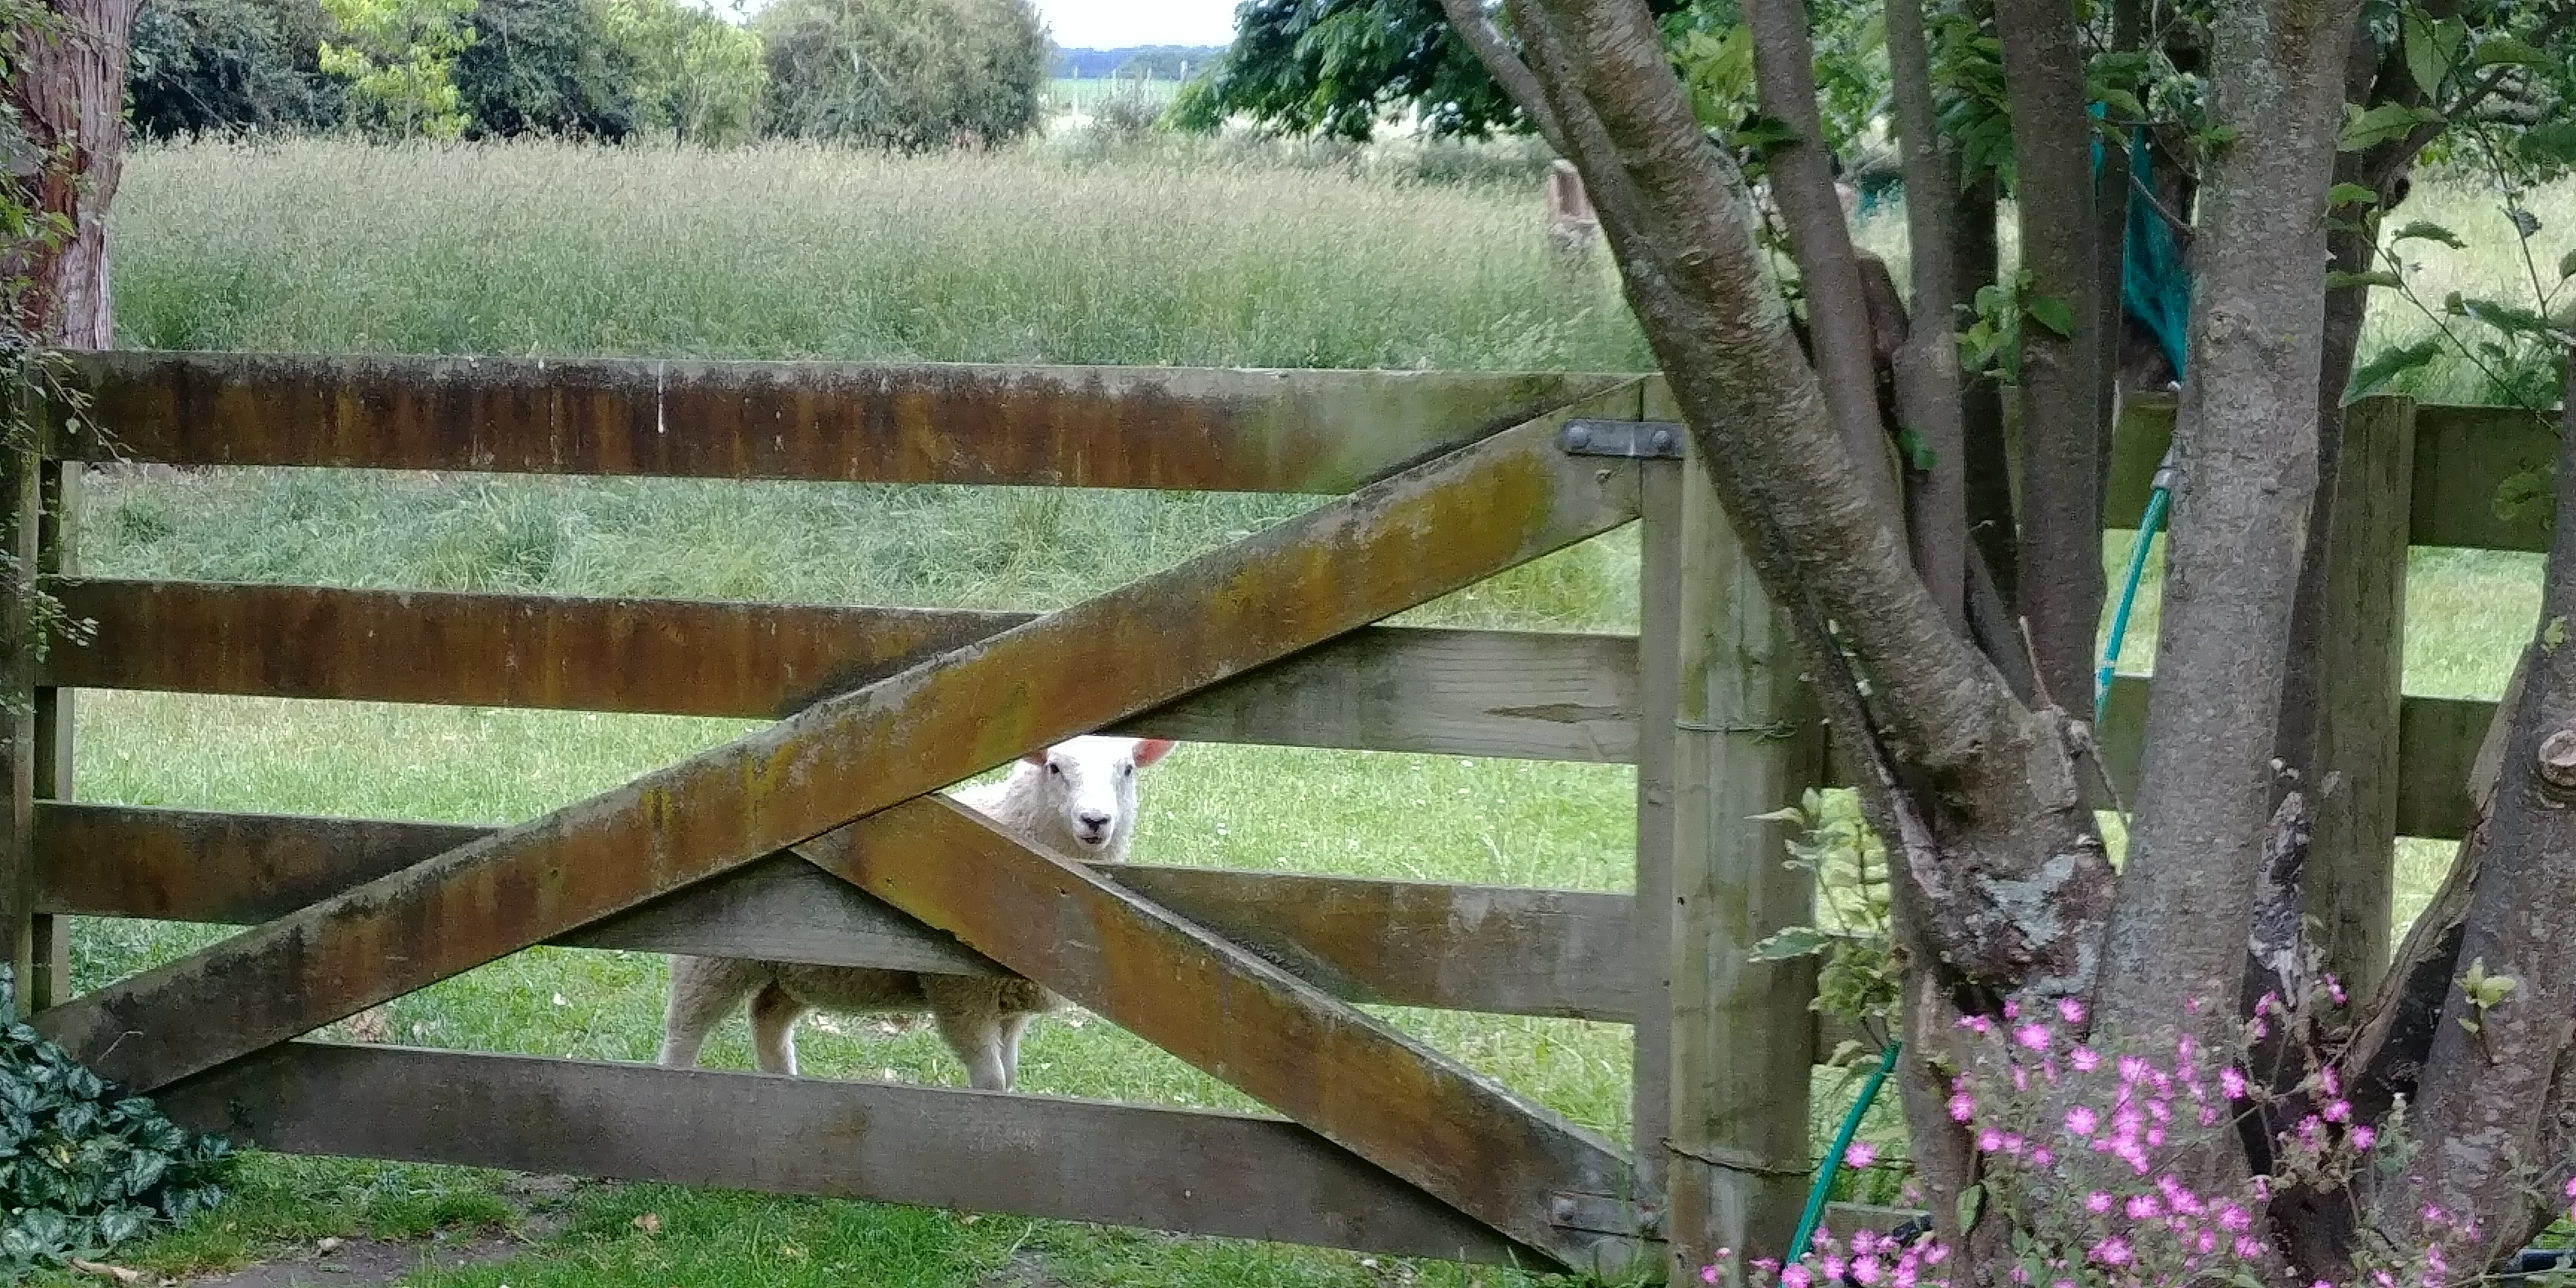 Sheep thru orchard gate